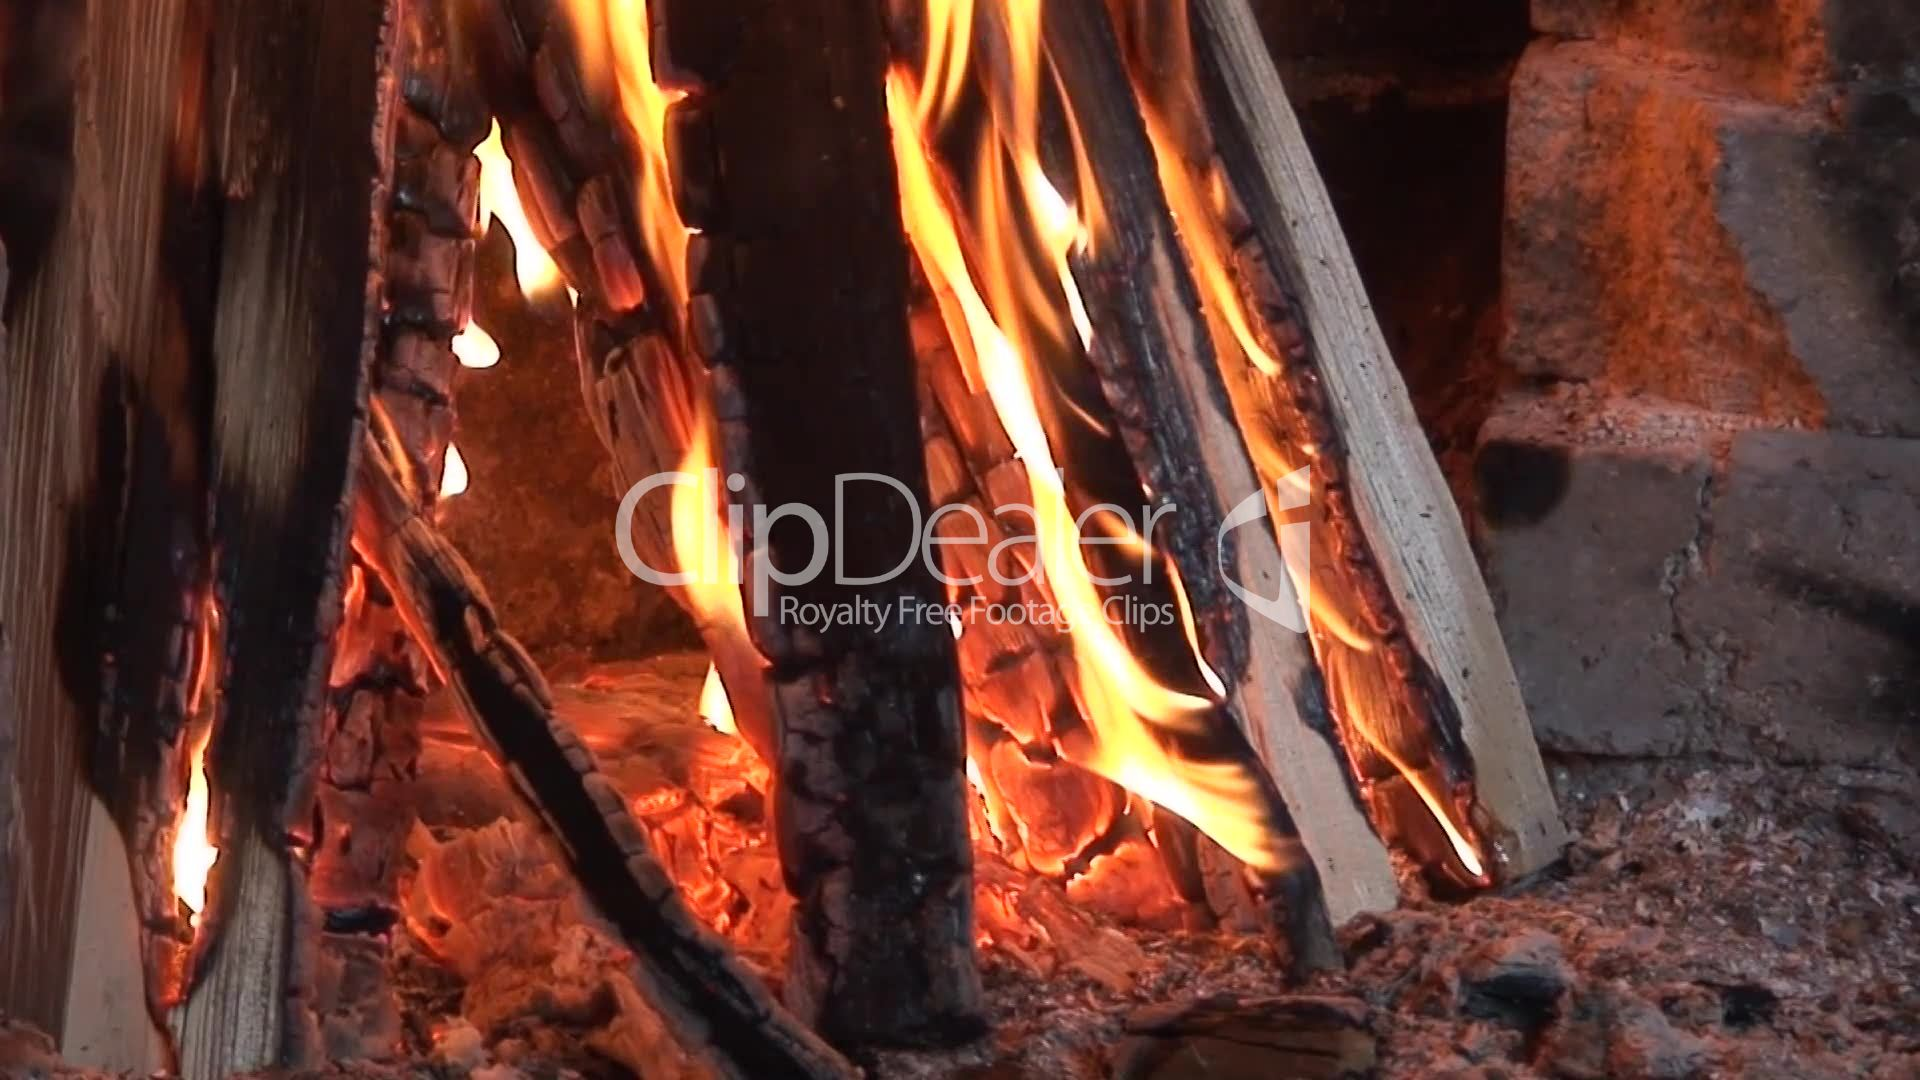 brennendes holz royalty free video and stock footage